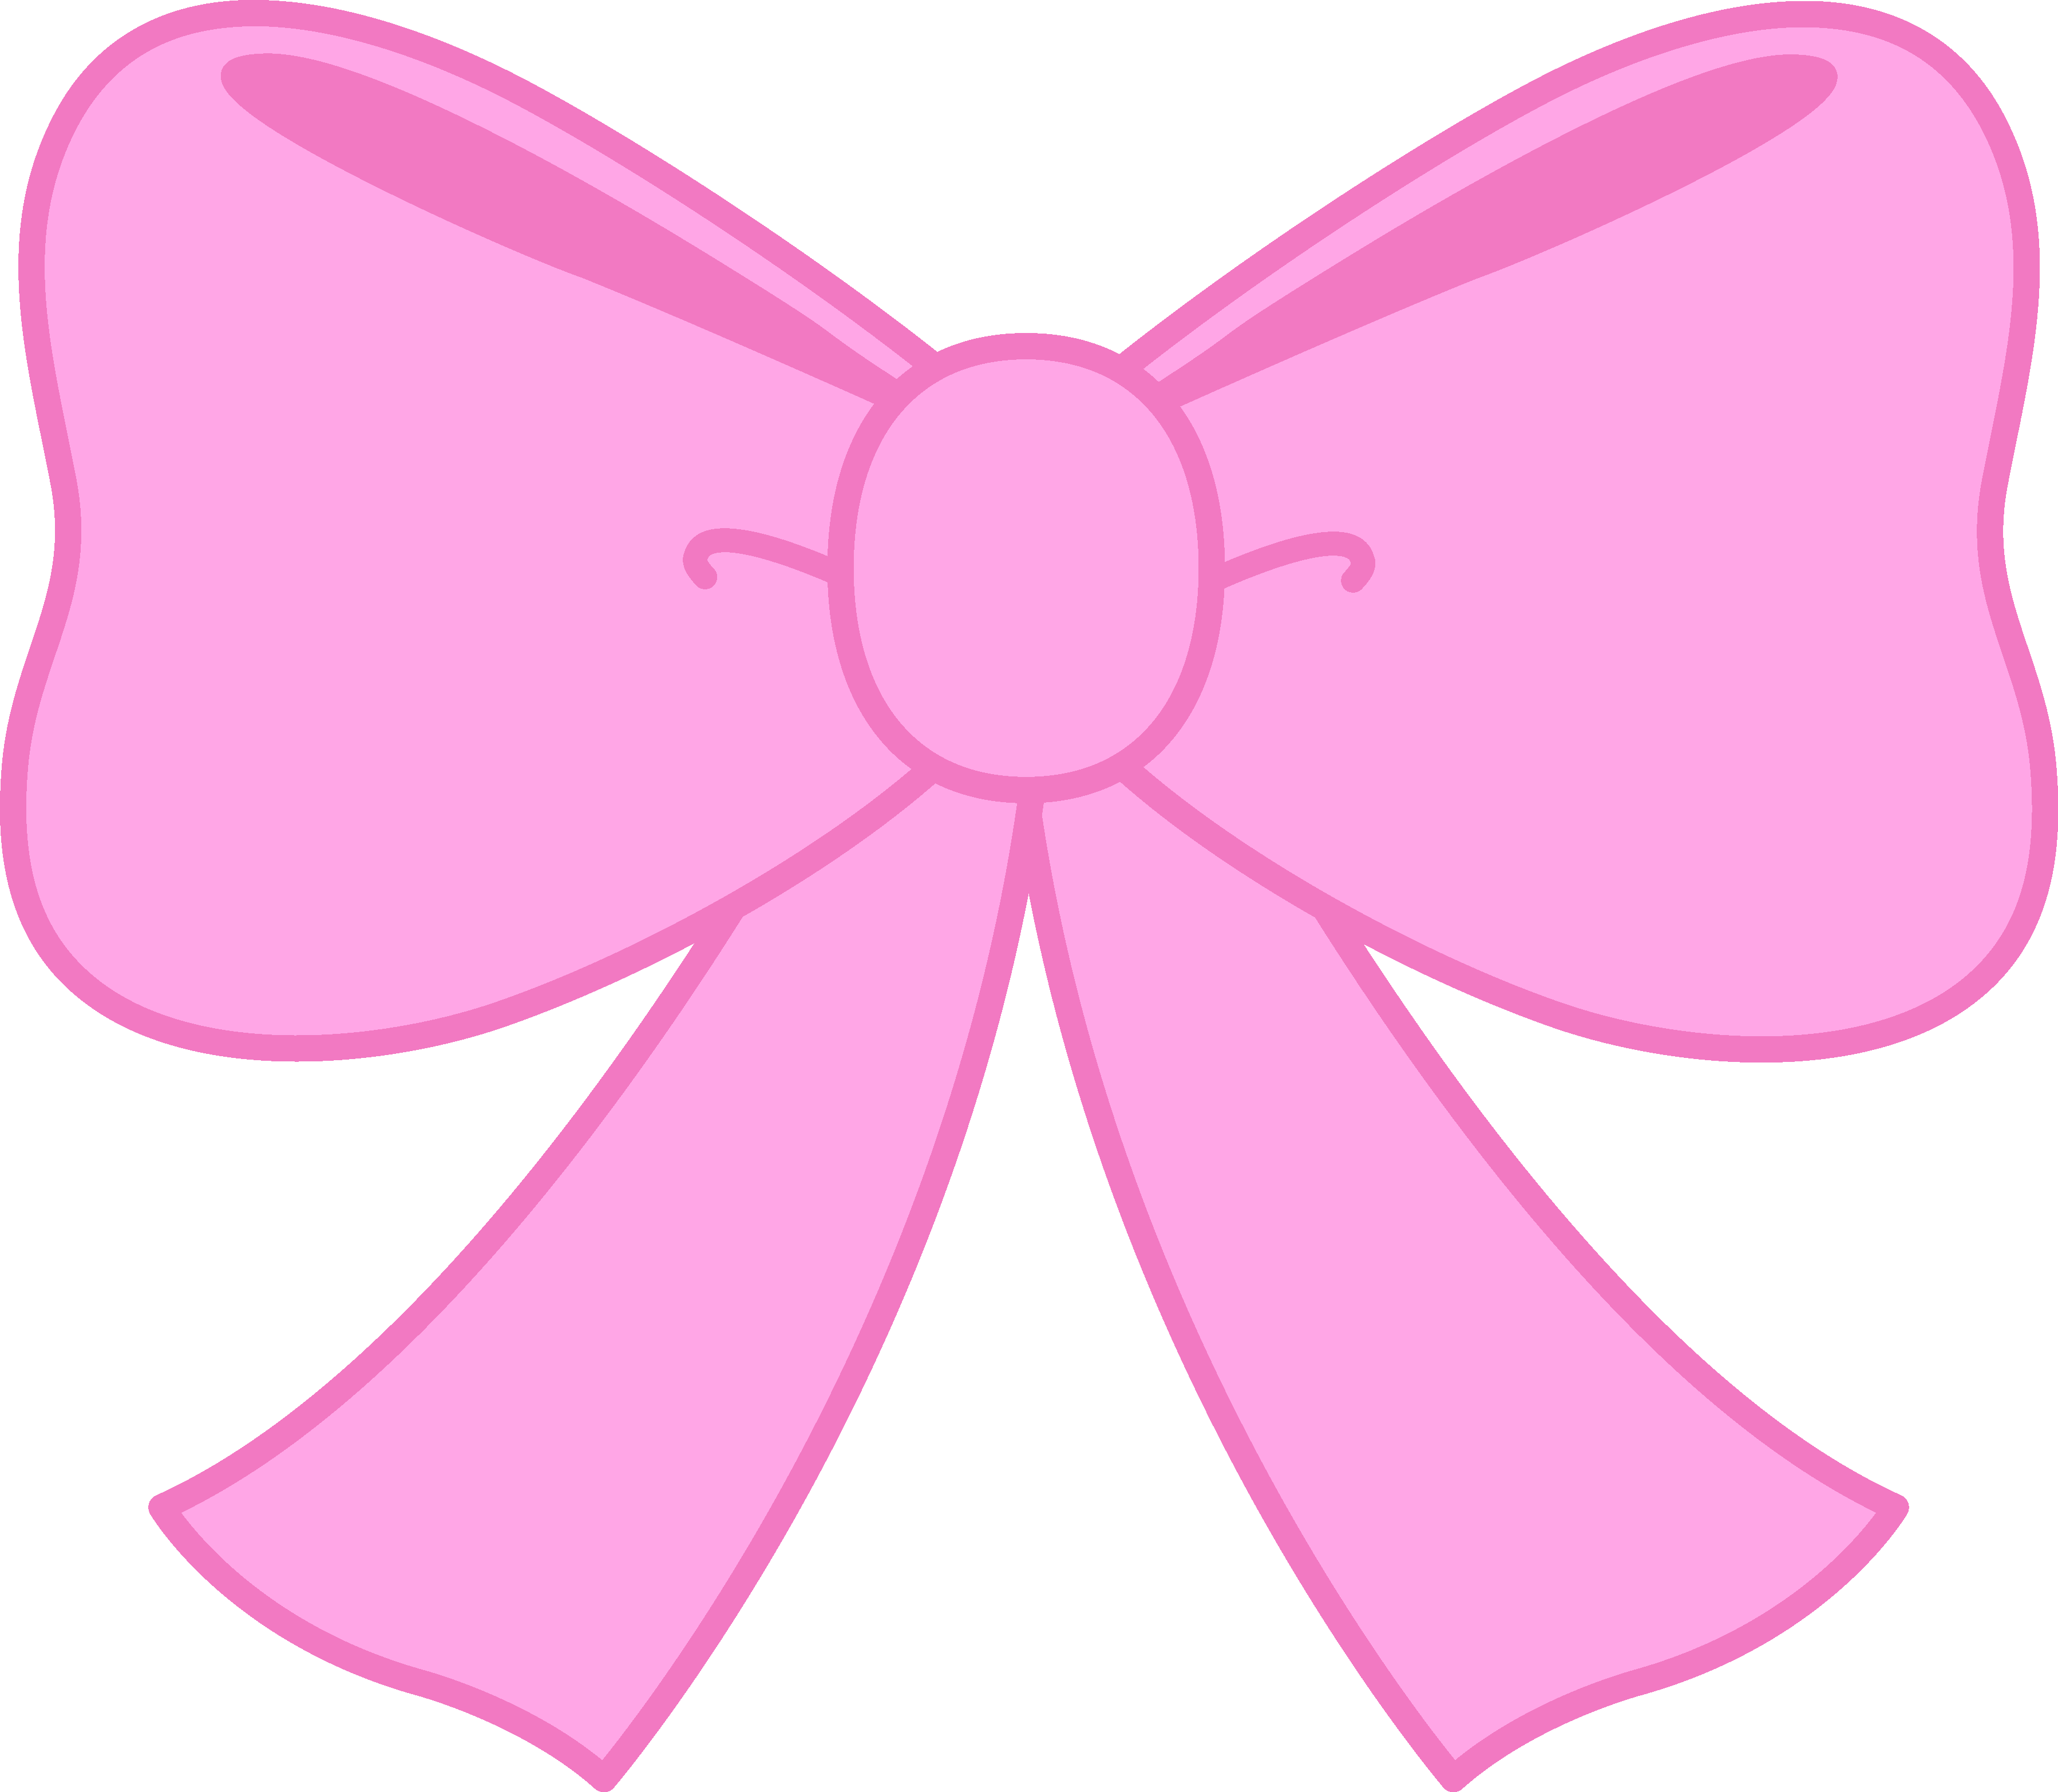 3596x3132 Collection Of Free Bow Vector Girly. Download On Ubisafe